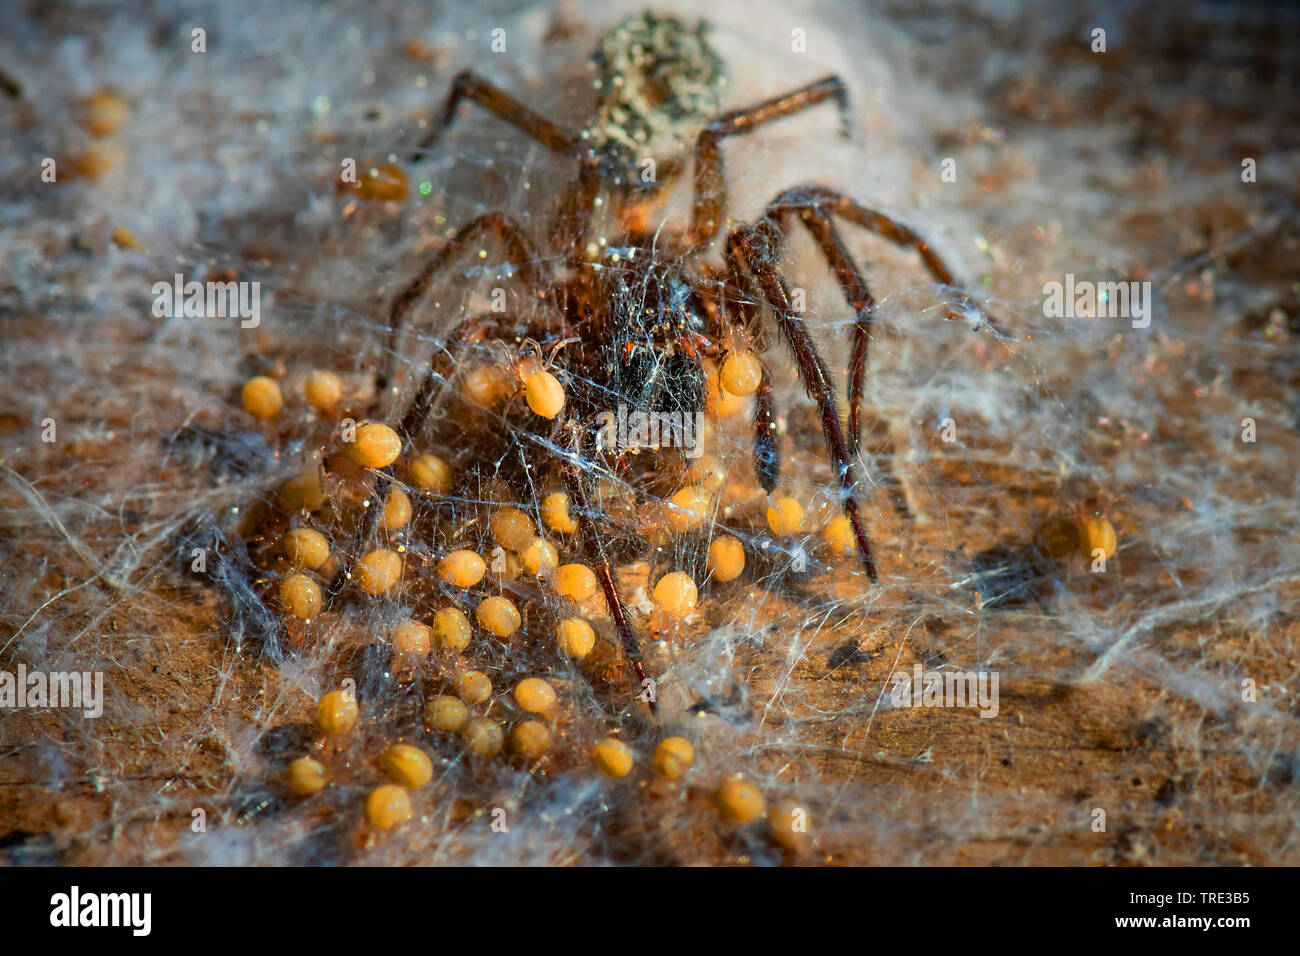 Kreuzspinnen (Araneus spec.), Kreuspinne mit Nachwuchs, Deutschland, NRW | orbweavers (Araneus spec.), spider with spiderlets, Germany, North Rhine-We - Stock Image